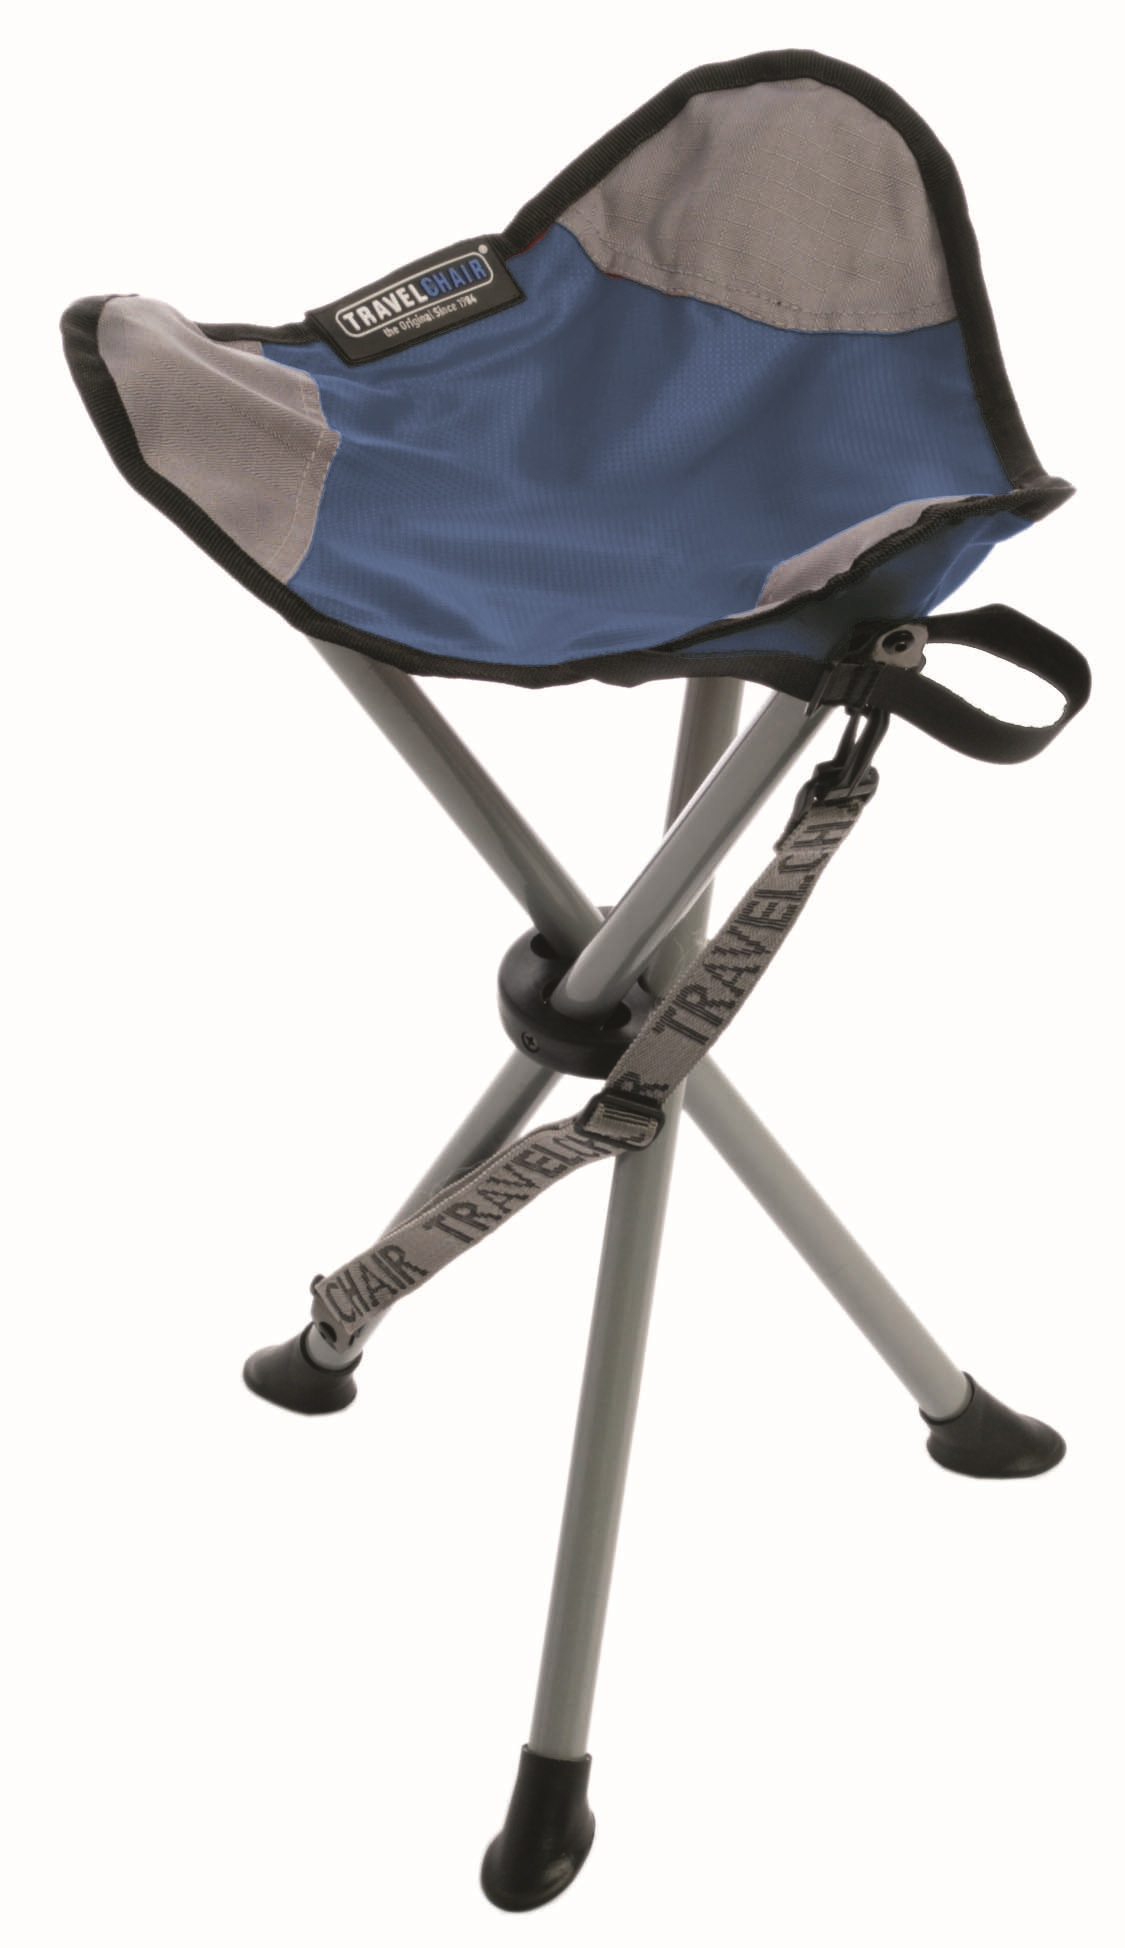 compact camp chair gym argos travel slacker stool blue